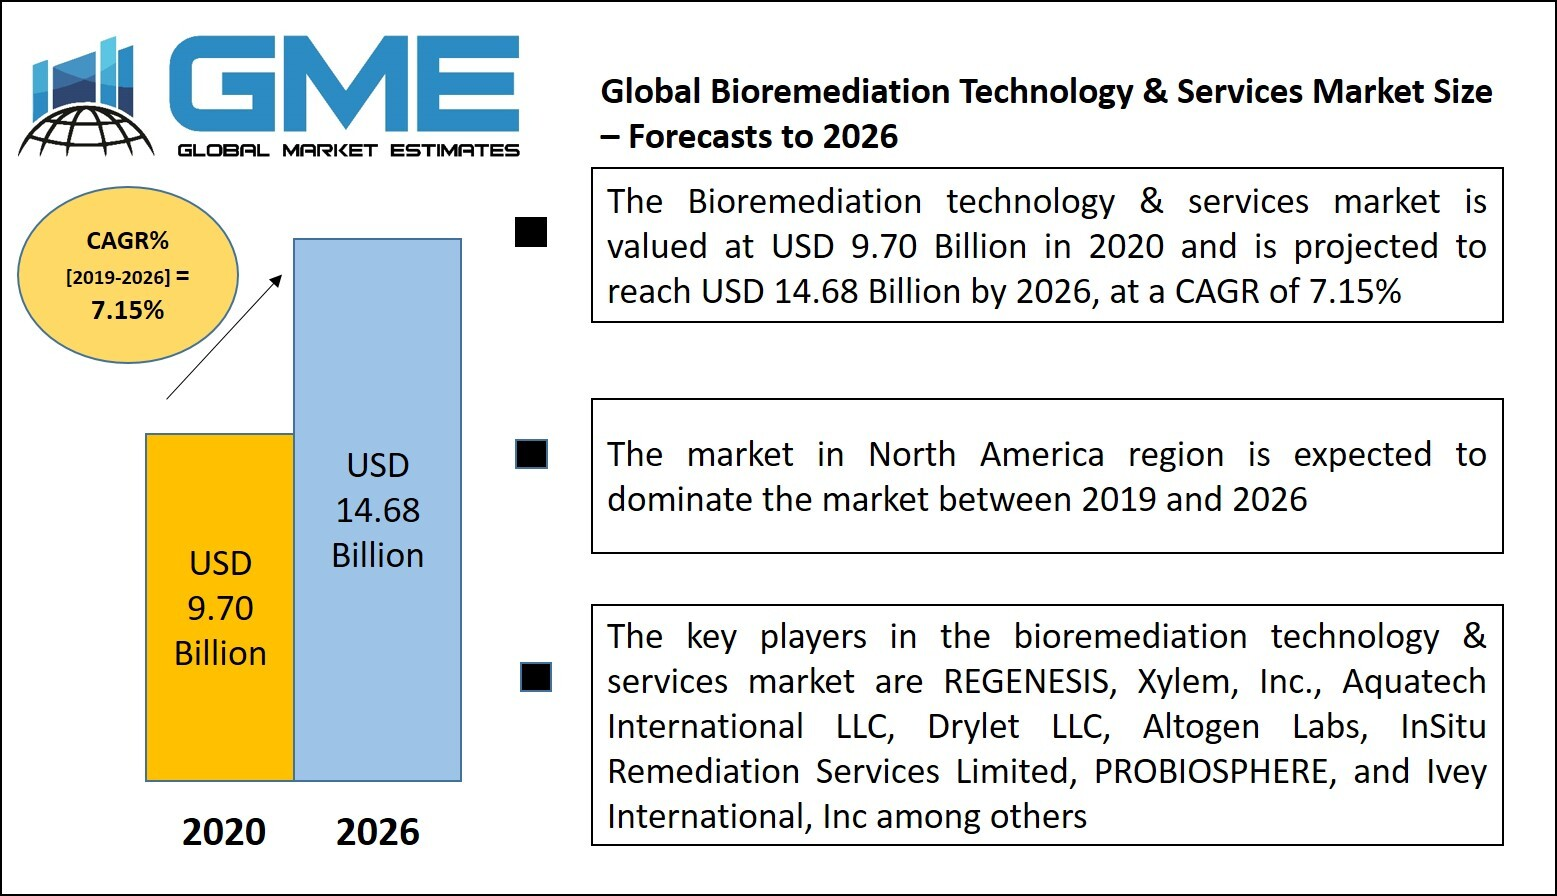 Bioremediation Technology & Services Market